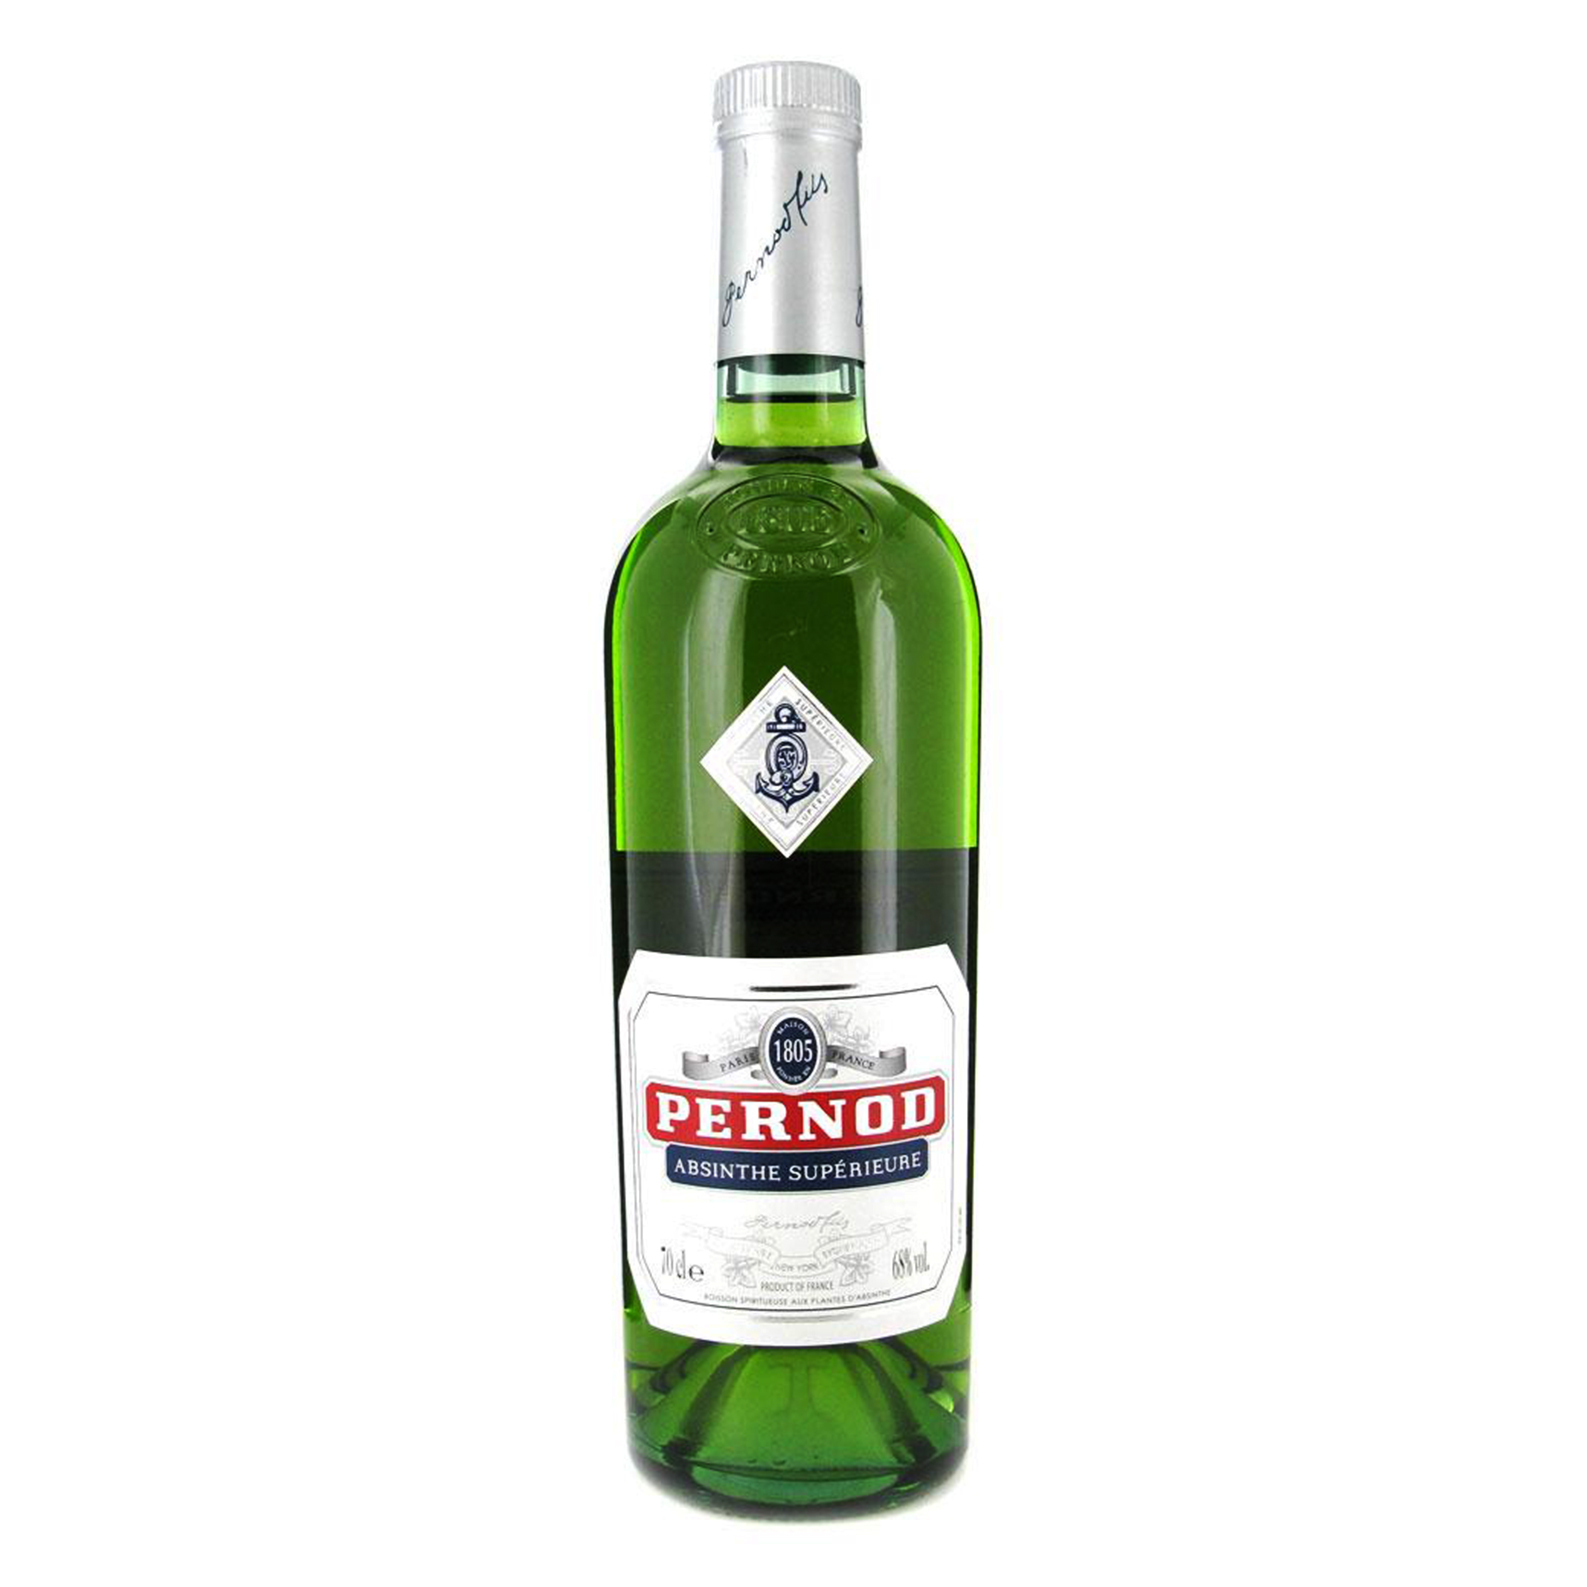 Pernod Absinthe Superieure - Assenzio - 70cl - Pernod Ricard